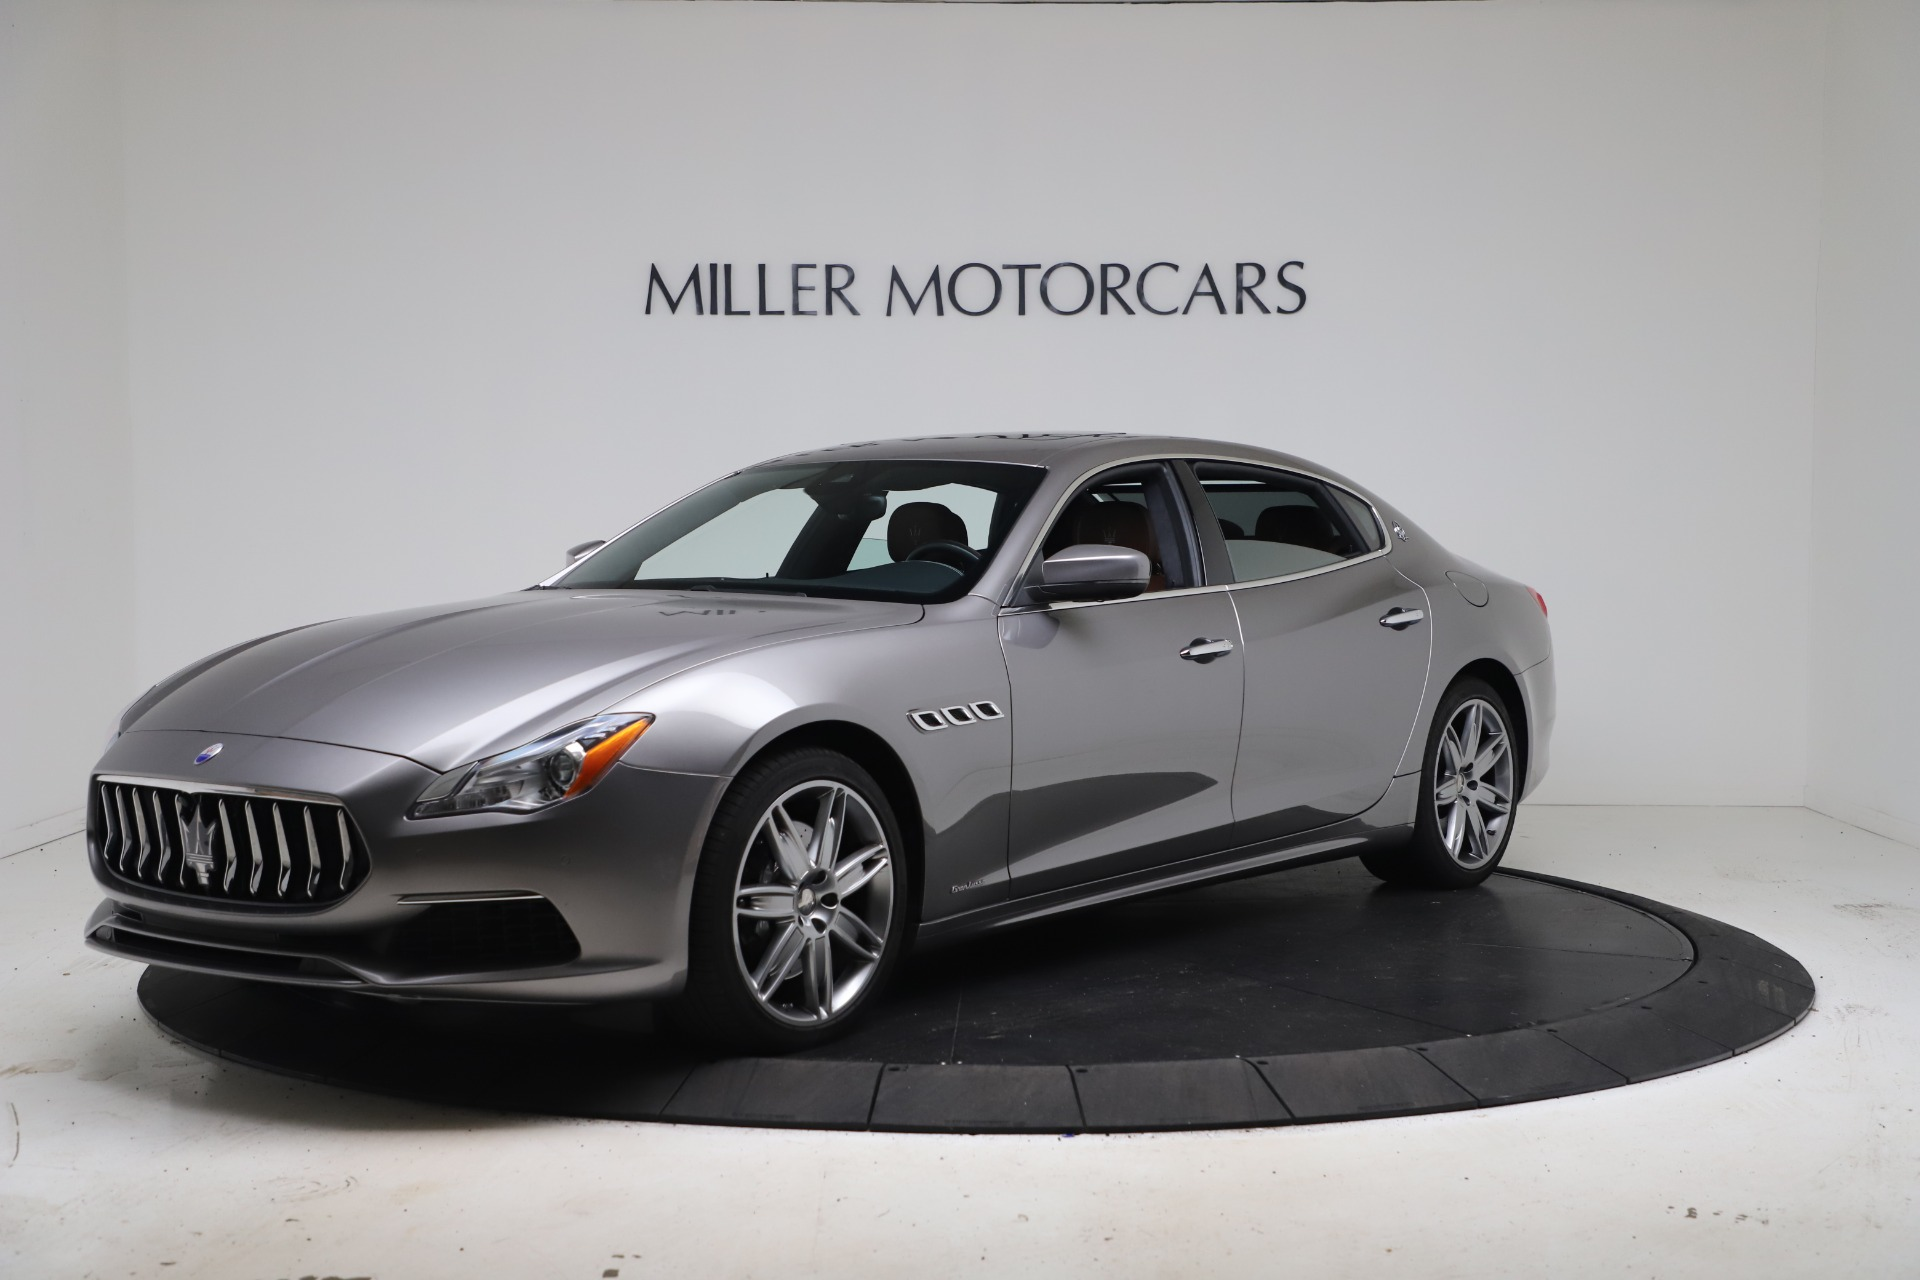 New 2017 Maserati Quattroporte SQ4 GranLusso/ Zegna For Sale In Greenwich, CT 1355_p2